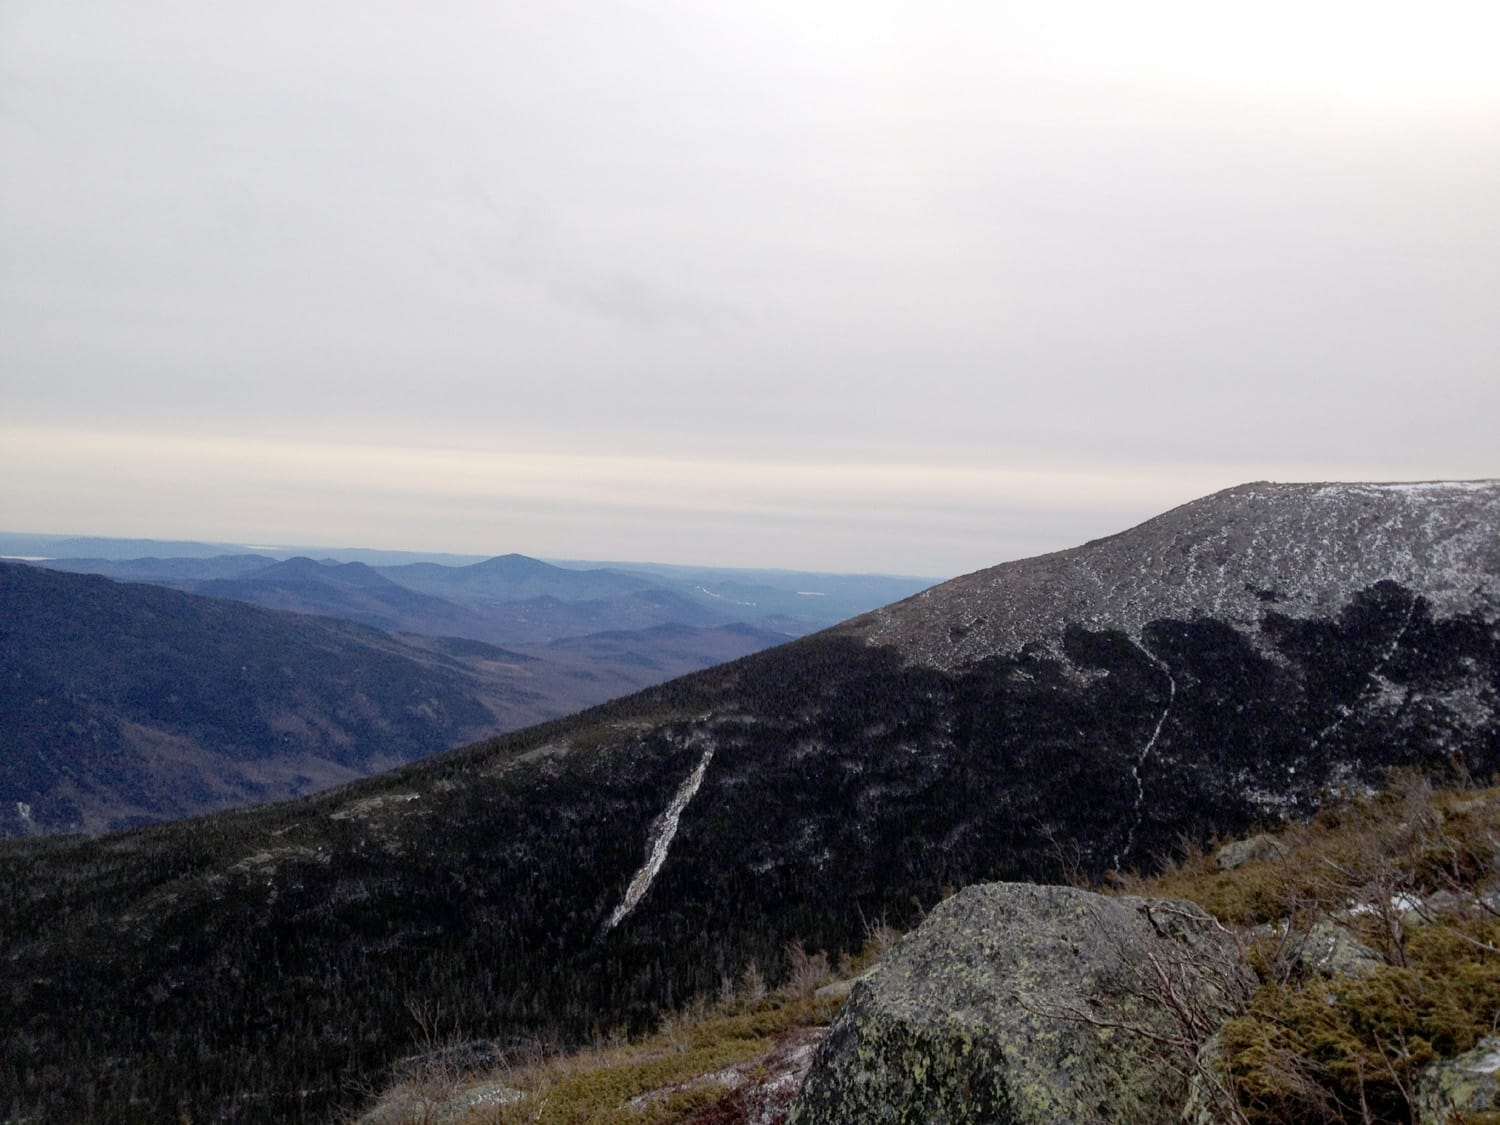 Mount Washington, December 2013